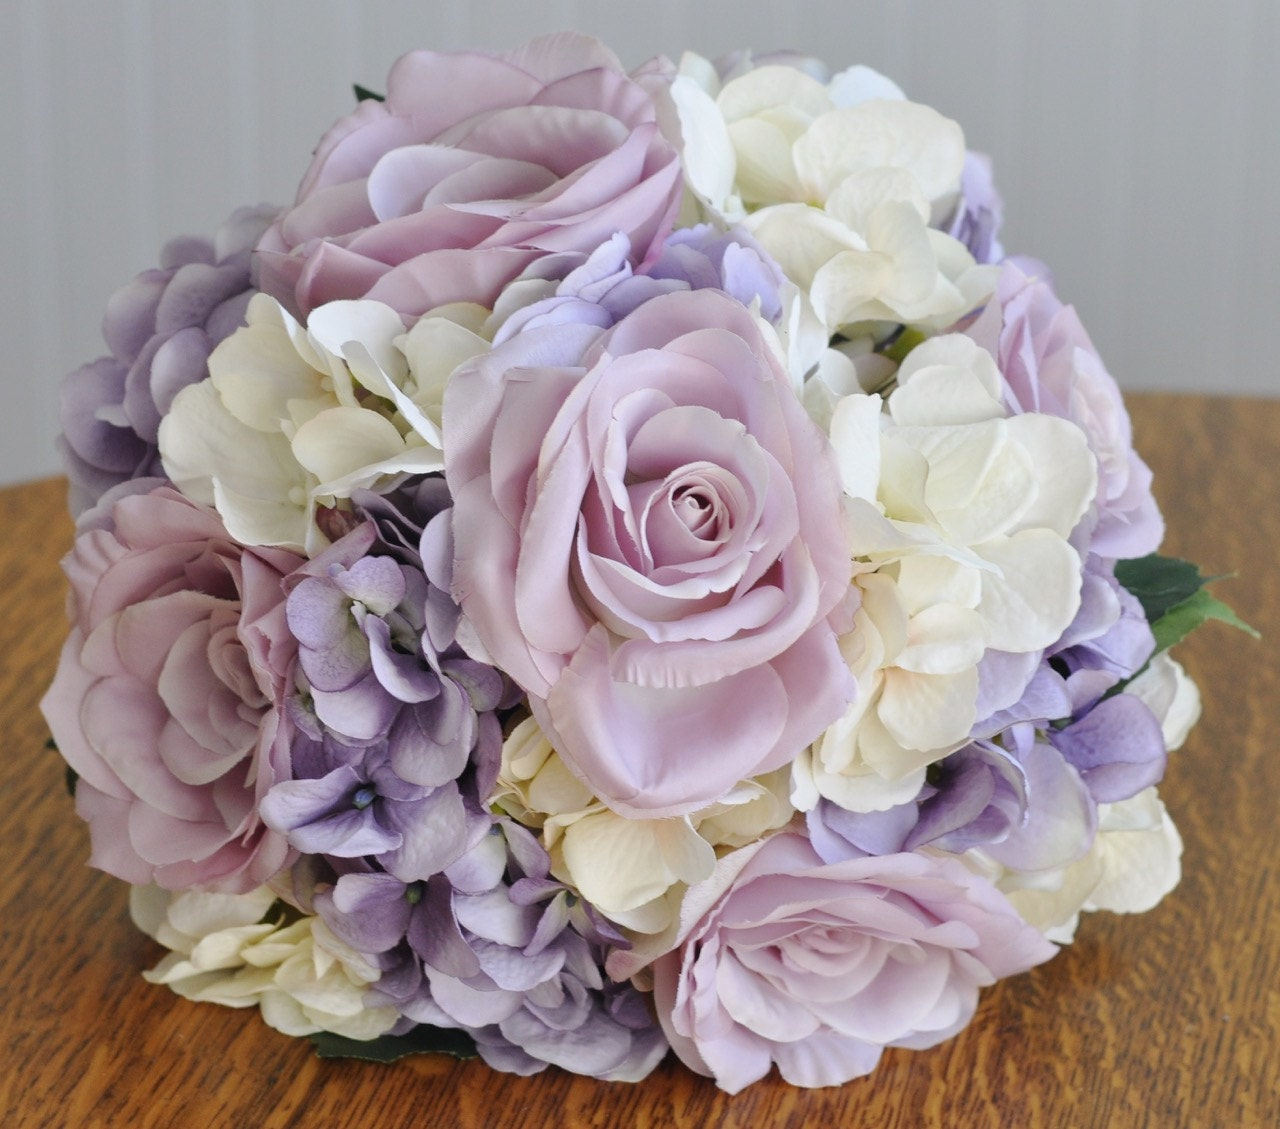 Silk wedding flower bouquet made with lavender roses lavender zoom izmirmasajfo